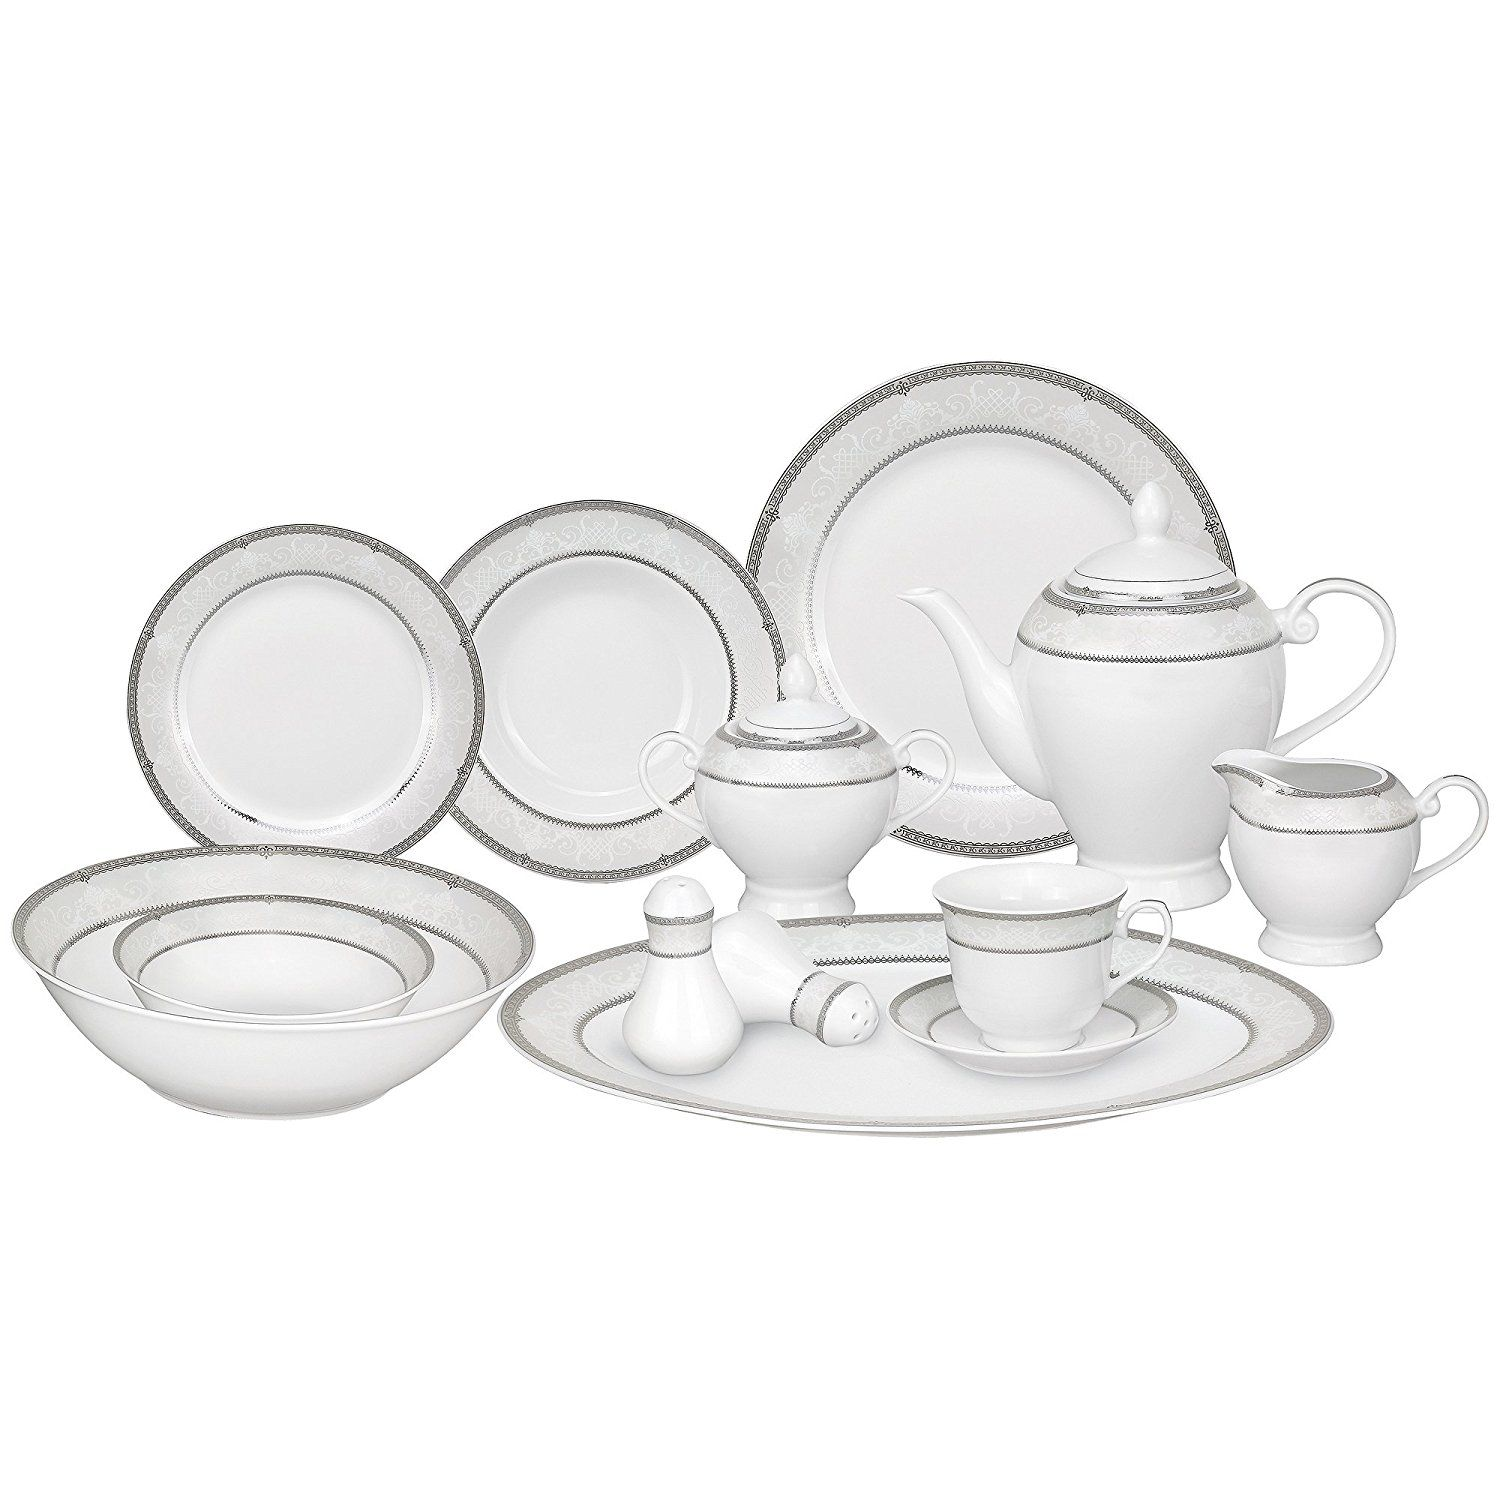 Lorren Home Trends 57-Piece Porcelain Dinnerware Set Ballo Service for 8 *  sc 1 st  Pinterest & Lorren Home Trends 57-Piece Porcelain Dinnerware Set Ballo Service ...